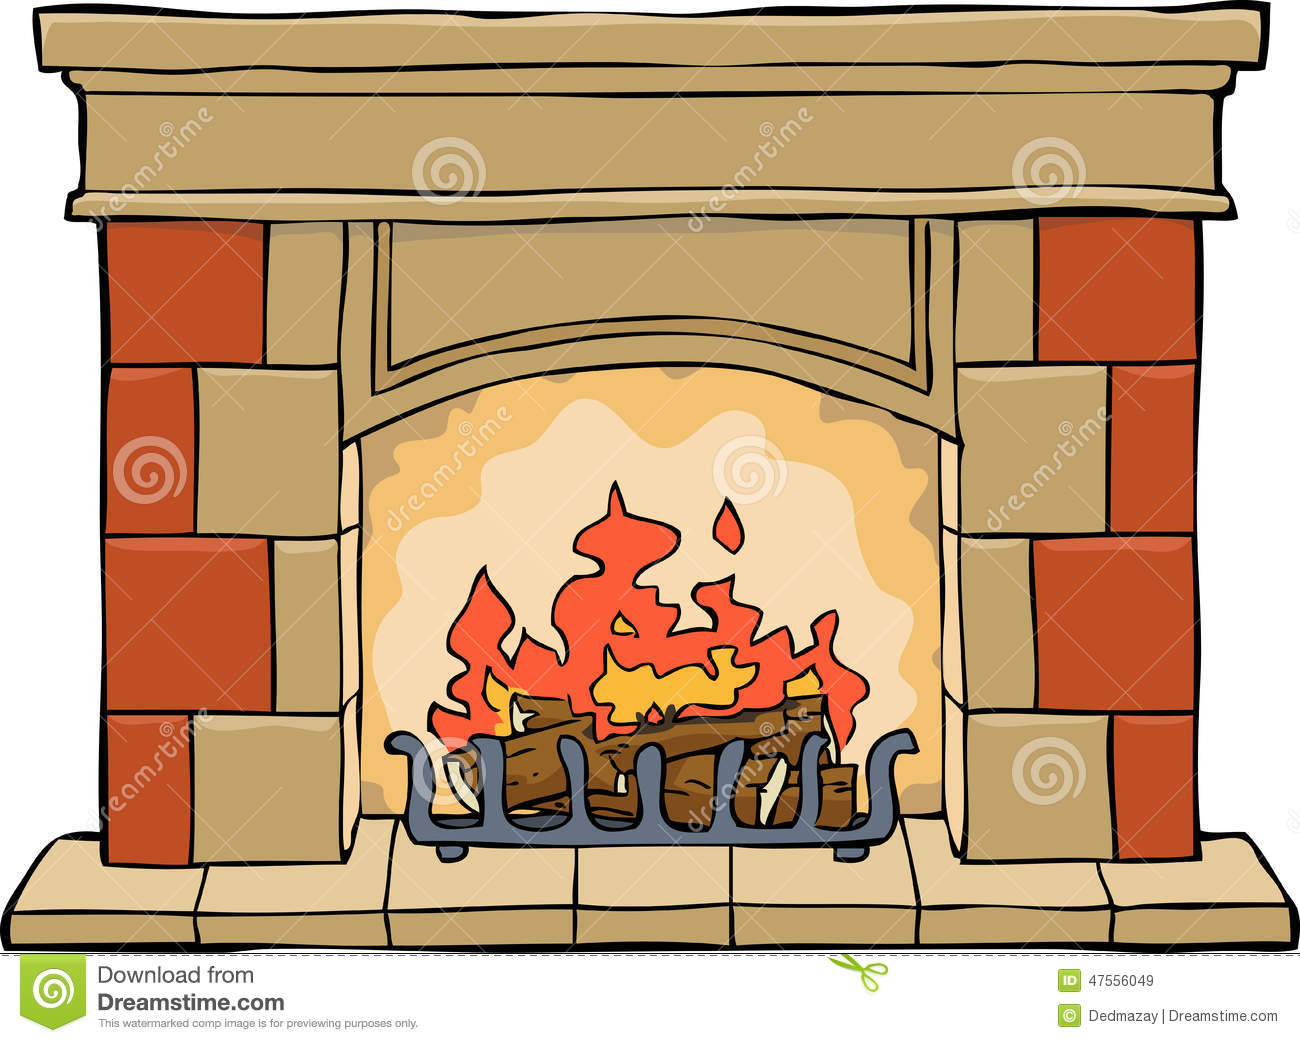 Open fireplace clipart - Clipground